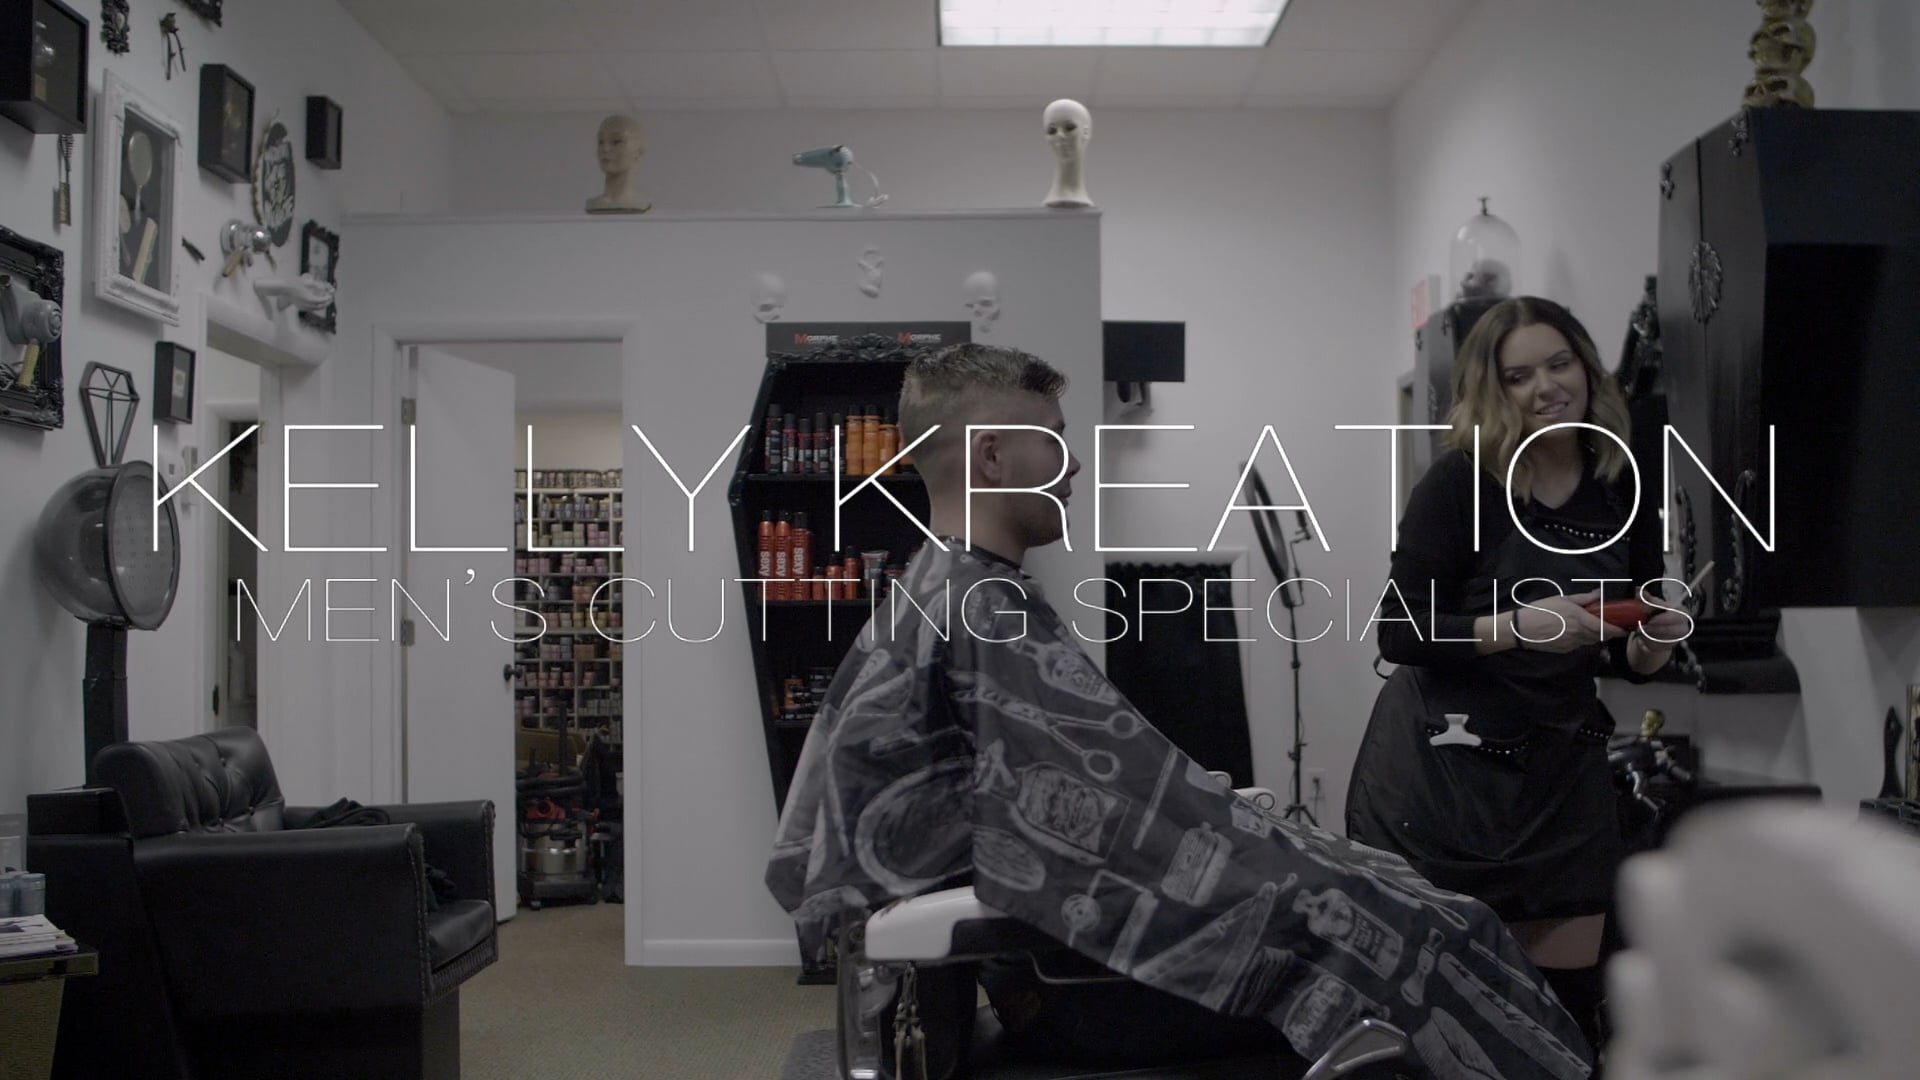 Kelly Kreation - Men's Cutting Specialists